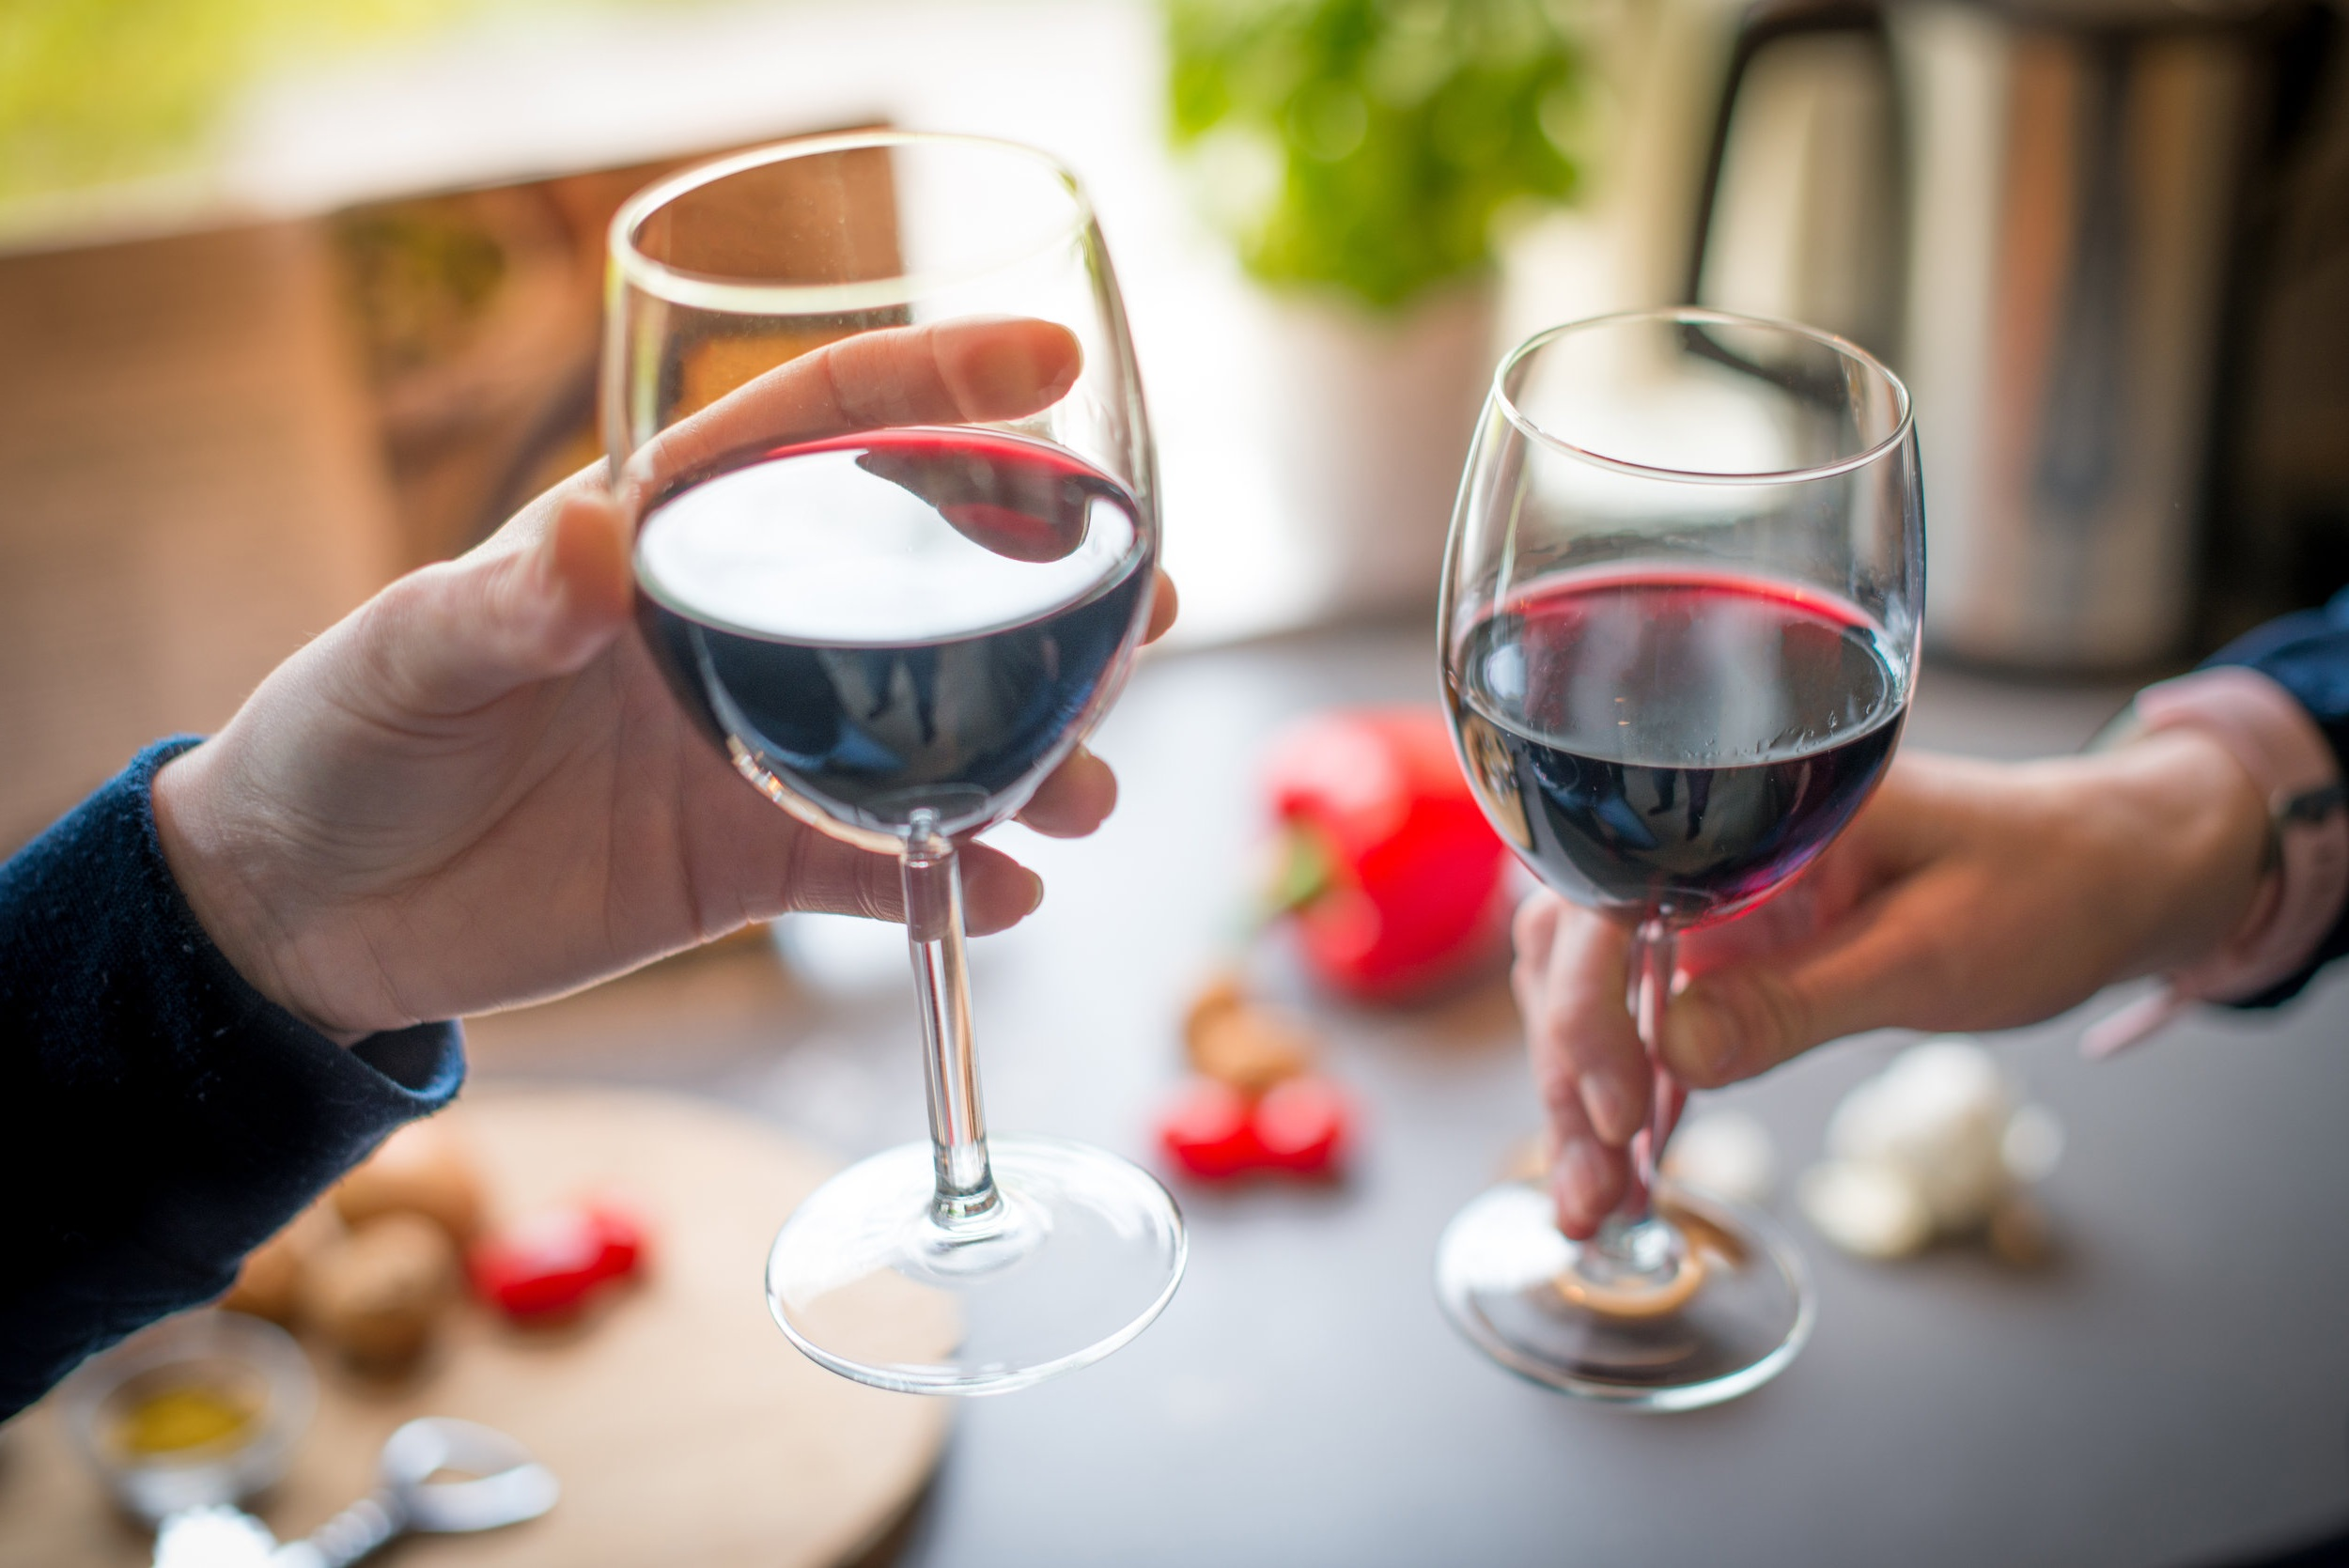 #6: Wine Tasting - Savoring the fine wines of the Ligurian region which easily give Tuscany a run for its money. This region of Liguria is famous for its Rossese and Vermentino varietals.